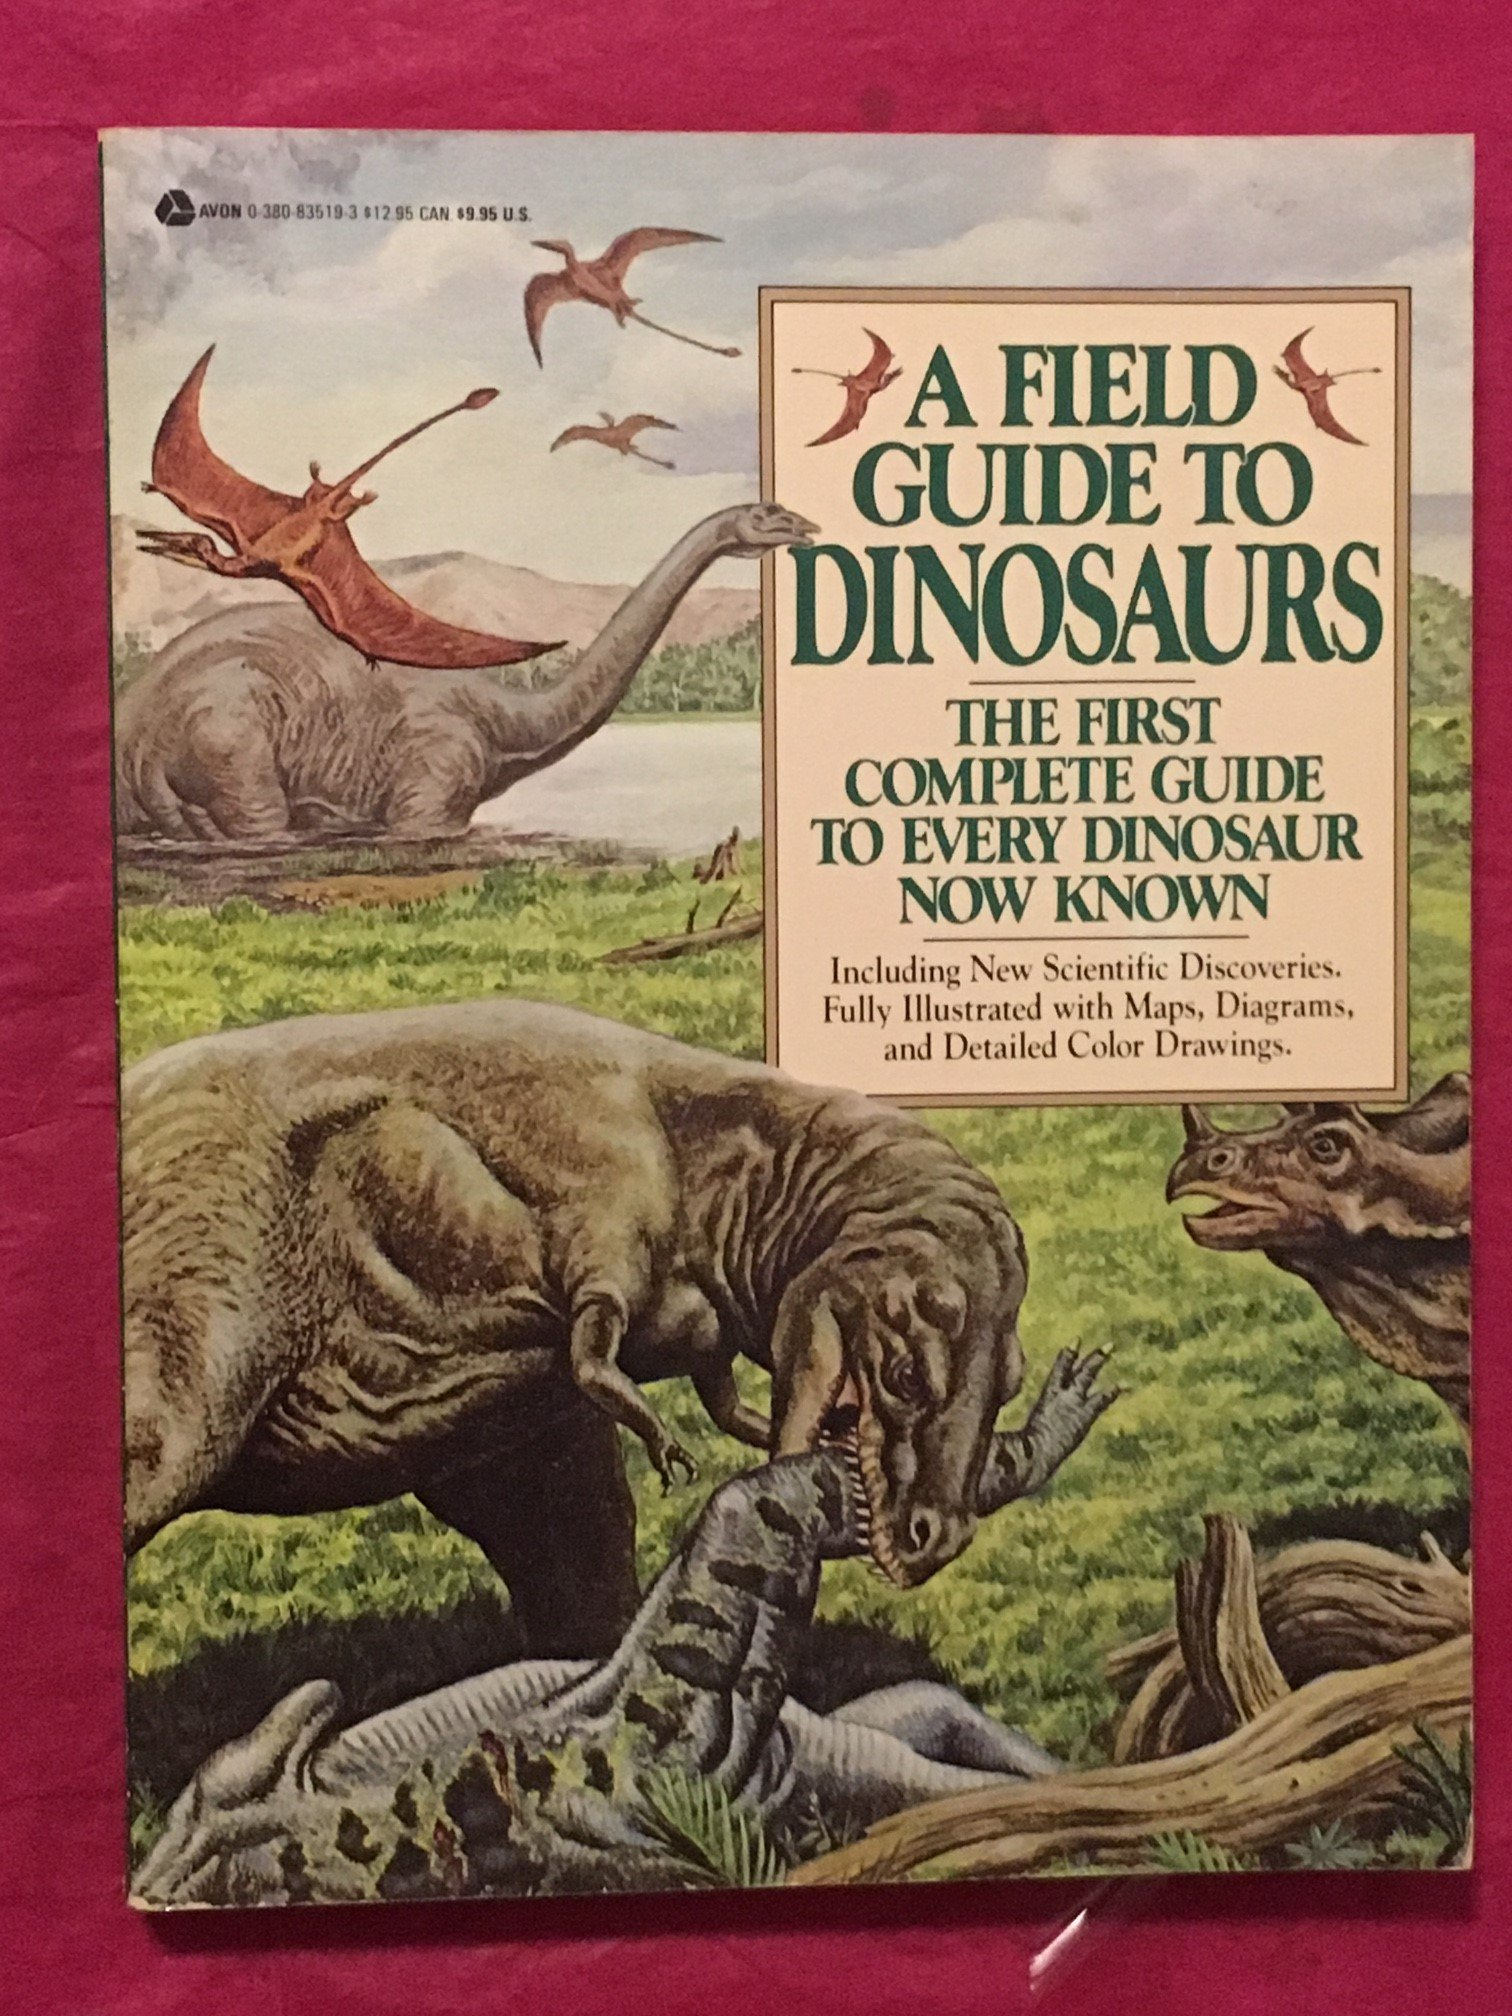 A Field Guide to Dinosaurs: The First Complete Guide to Every Dinosaur Now Known